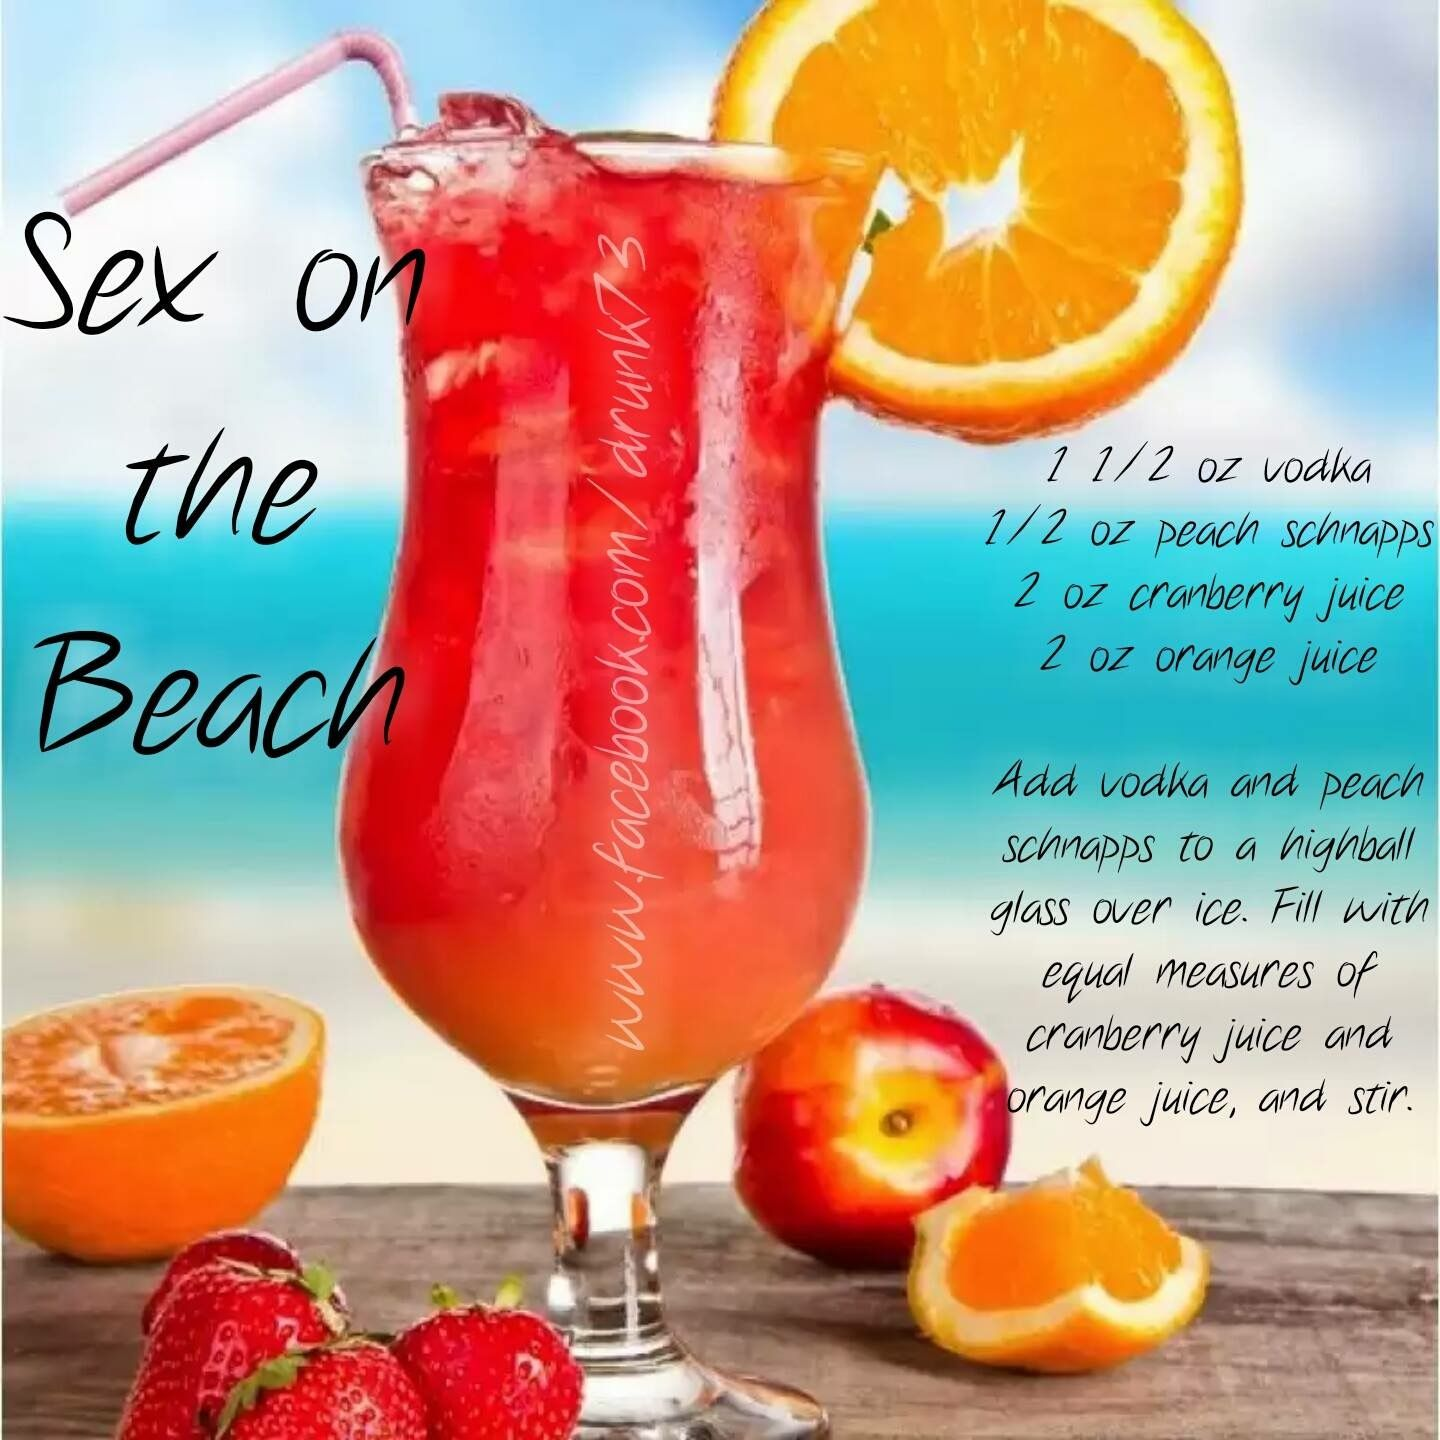 Best vodka for sex on the beach